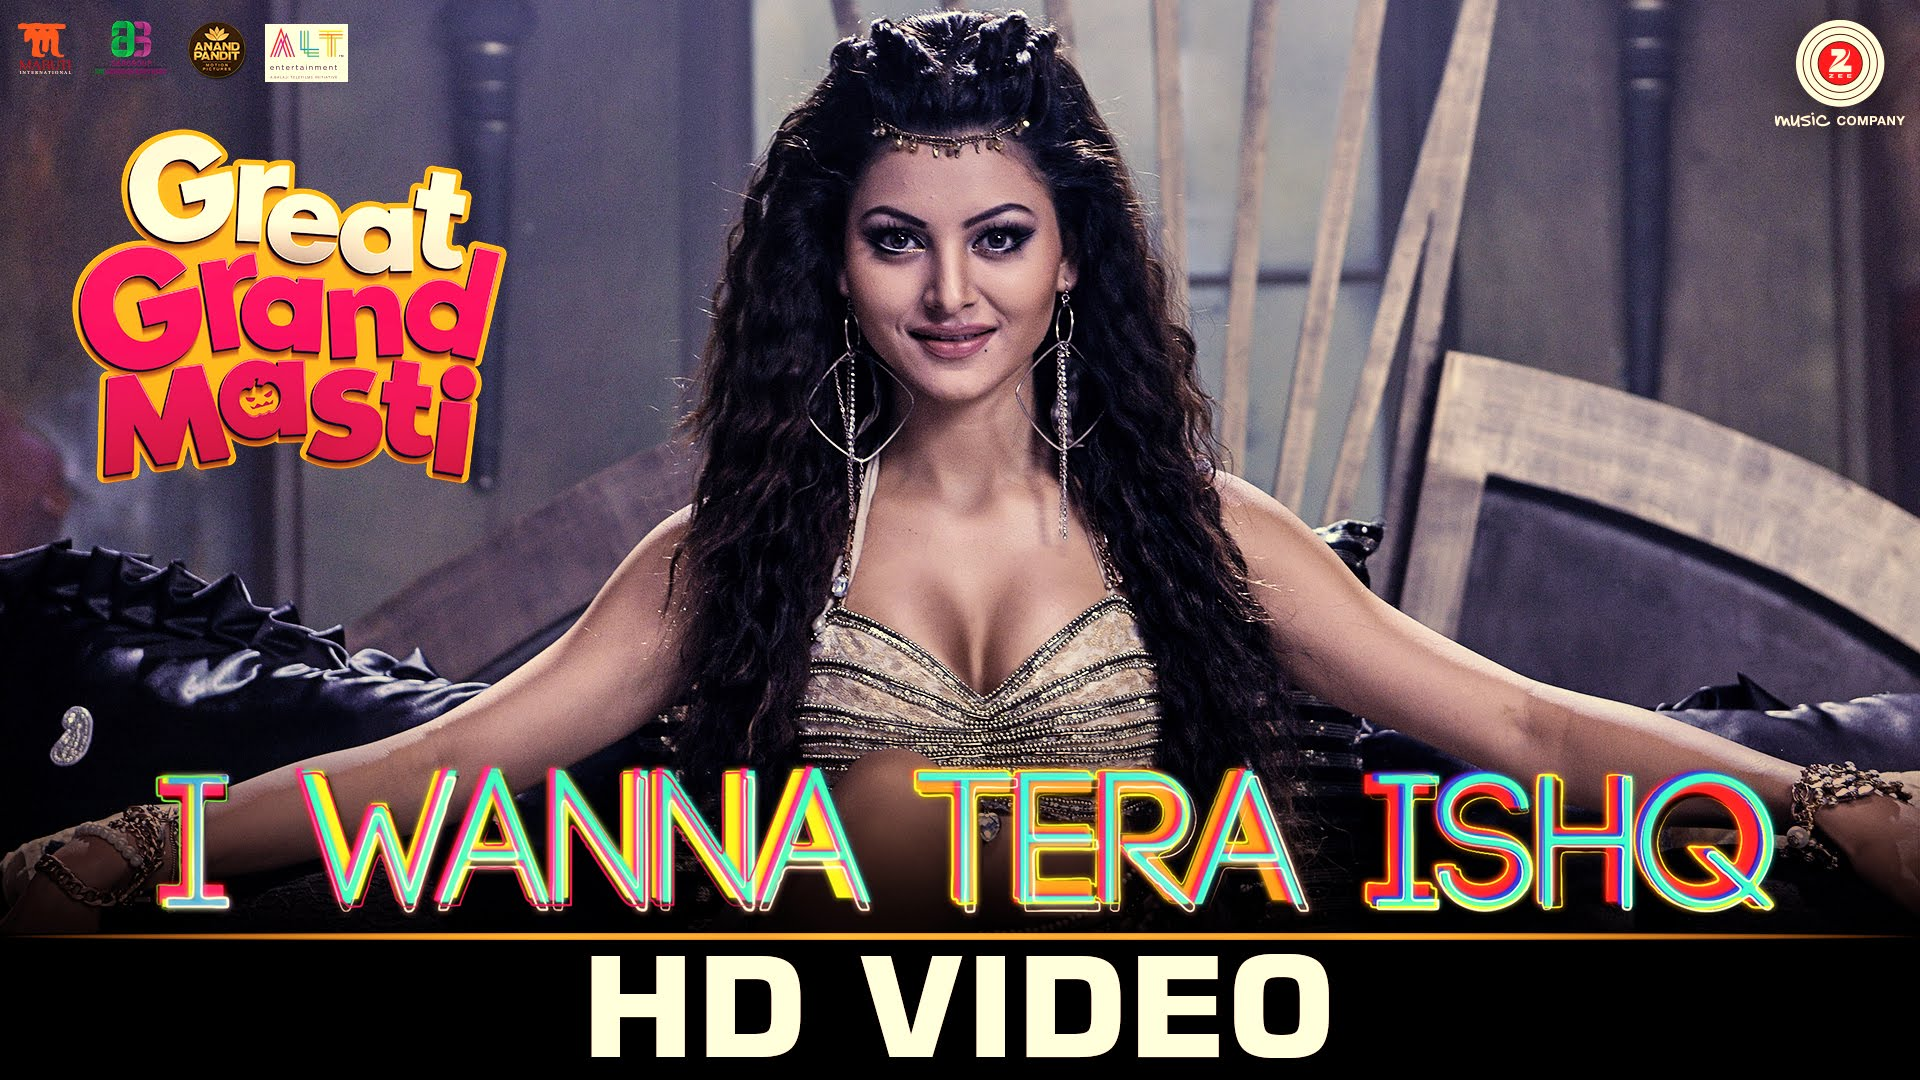 Urvashi Rautela is spooky and sexy at the same time in I Wanna Tera Ishq!